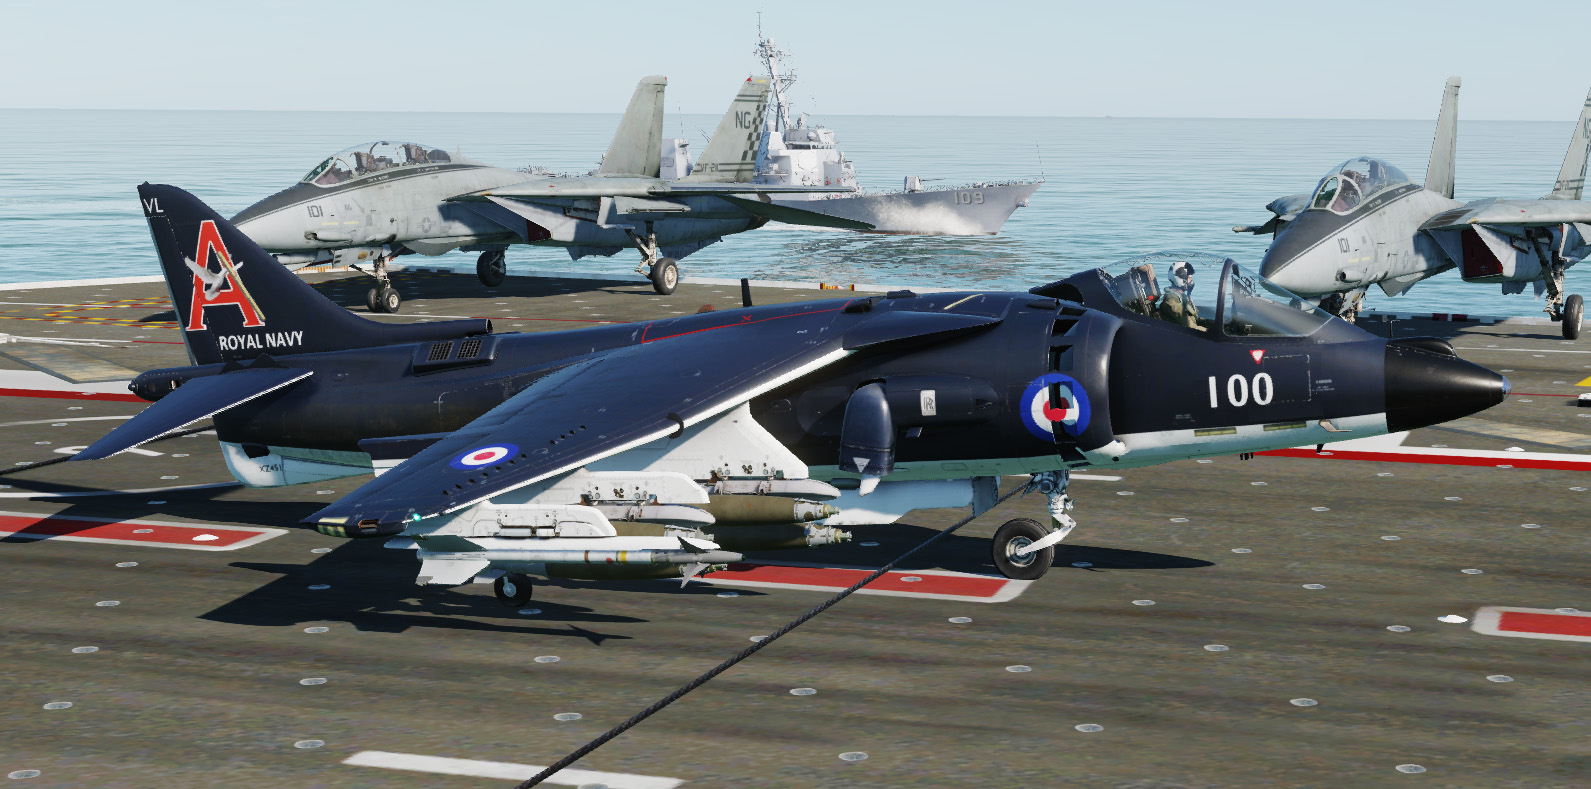 AV-8B Harrier II Royal Navy 700A Naval Air Squadron